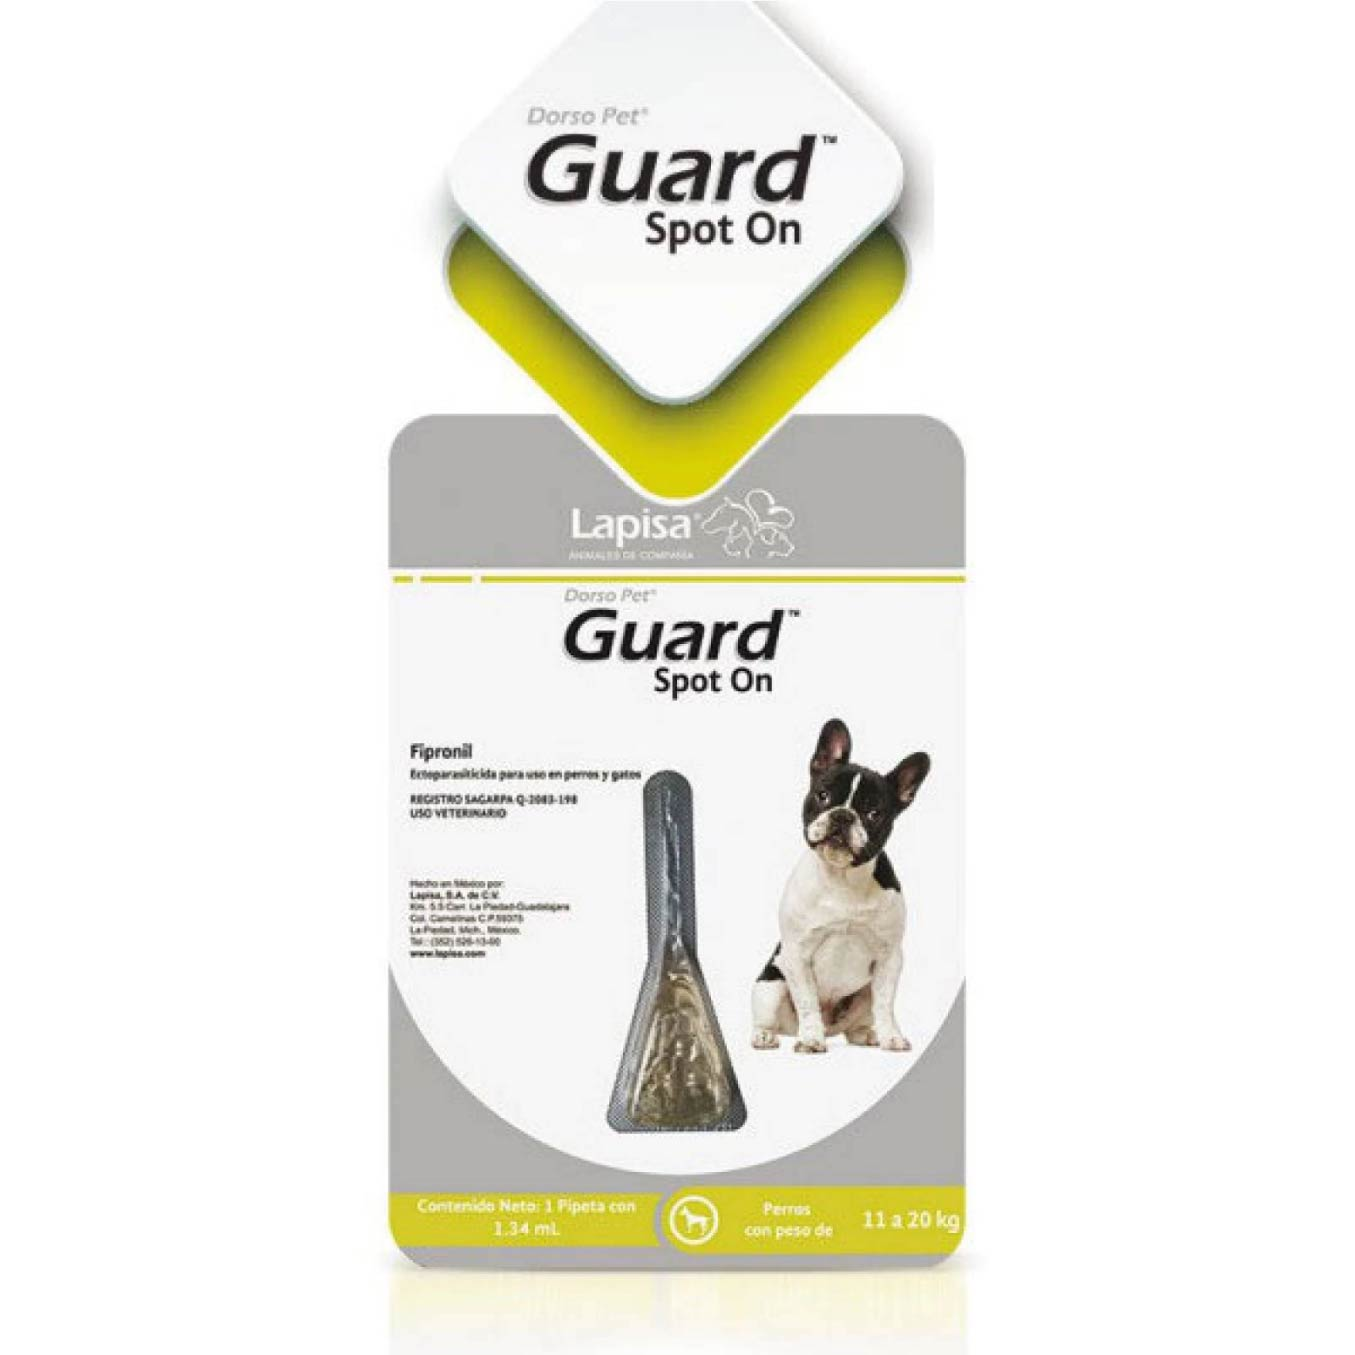 Dorso Pet Guard Spot On Pipeta Antipulgas Piojos y Garrapatas para Perro